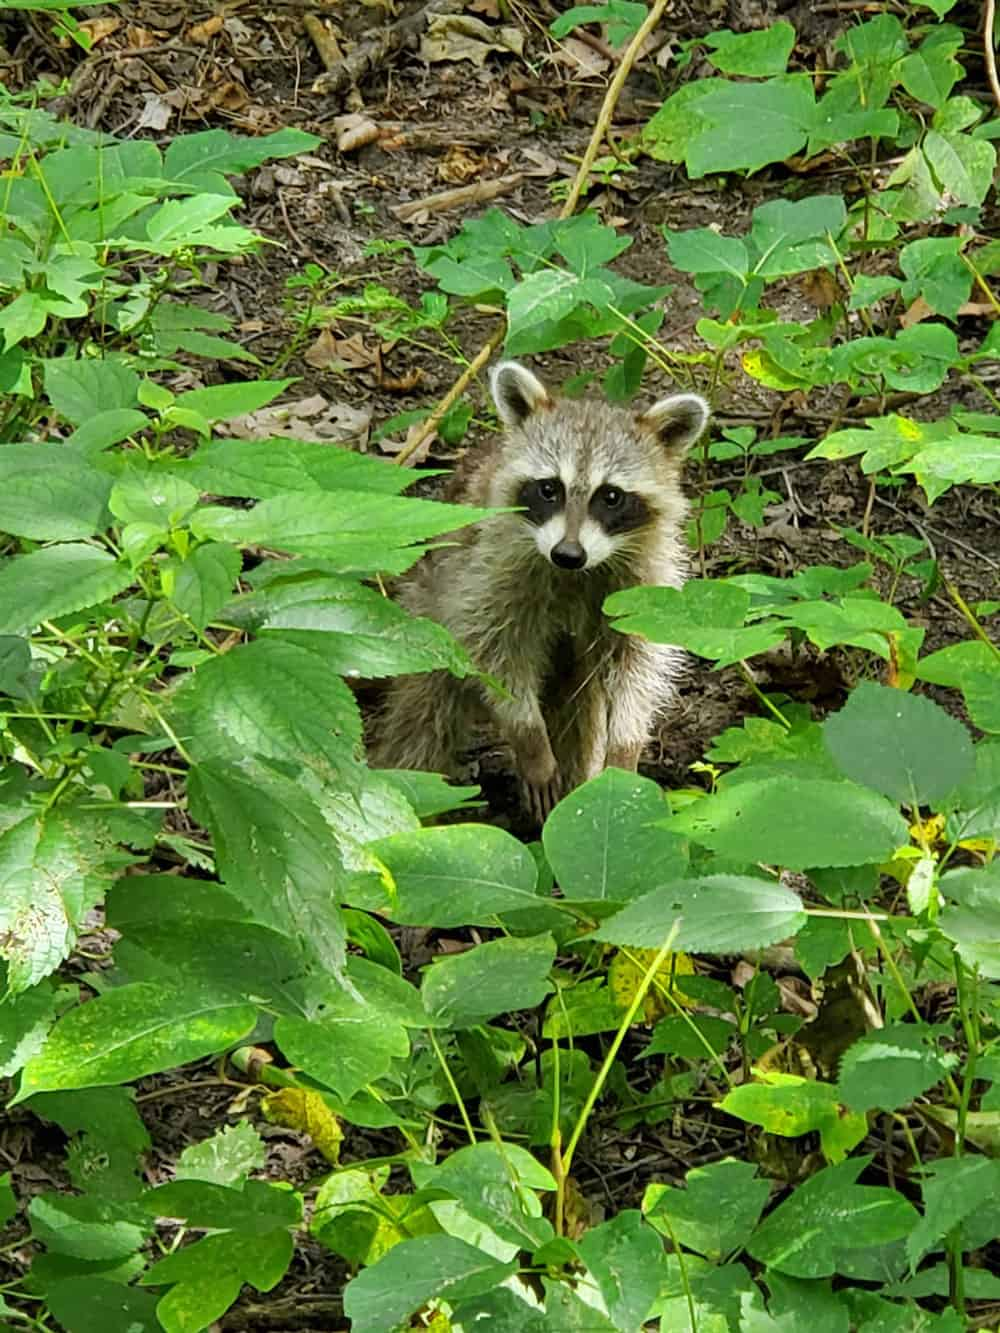 A curious young raccoon peers in on GLSC researchers as they walk through a wetland in Ohio on the way to a study site.